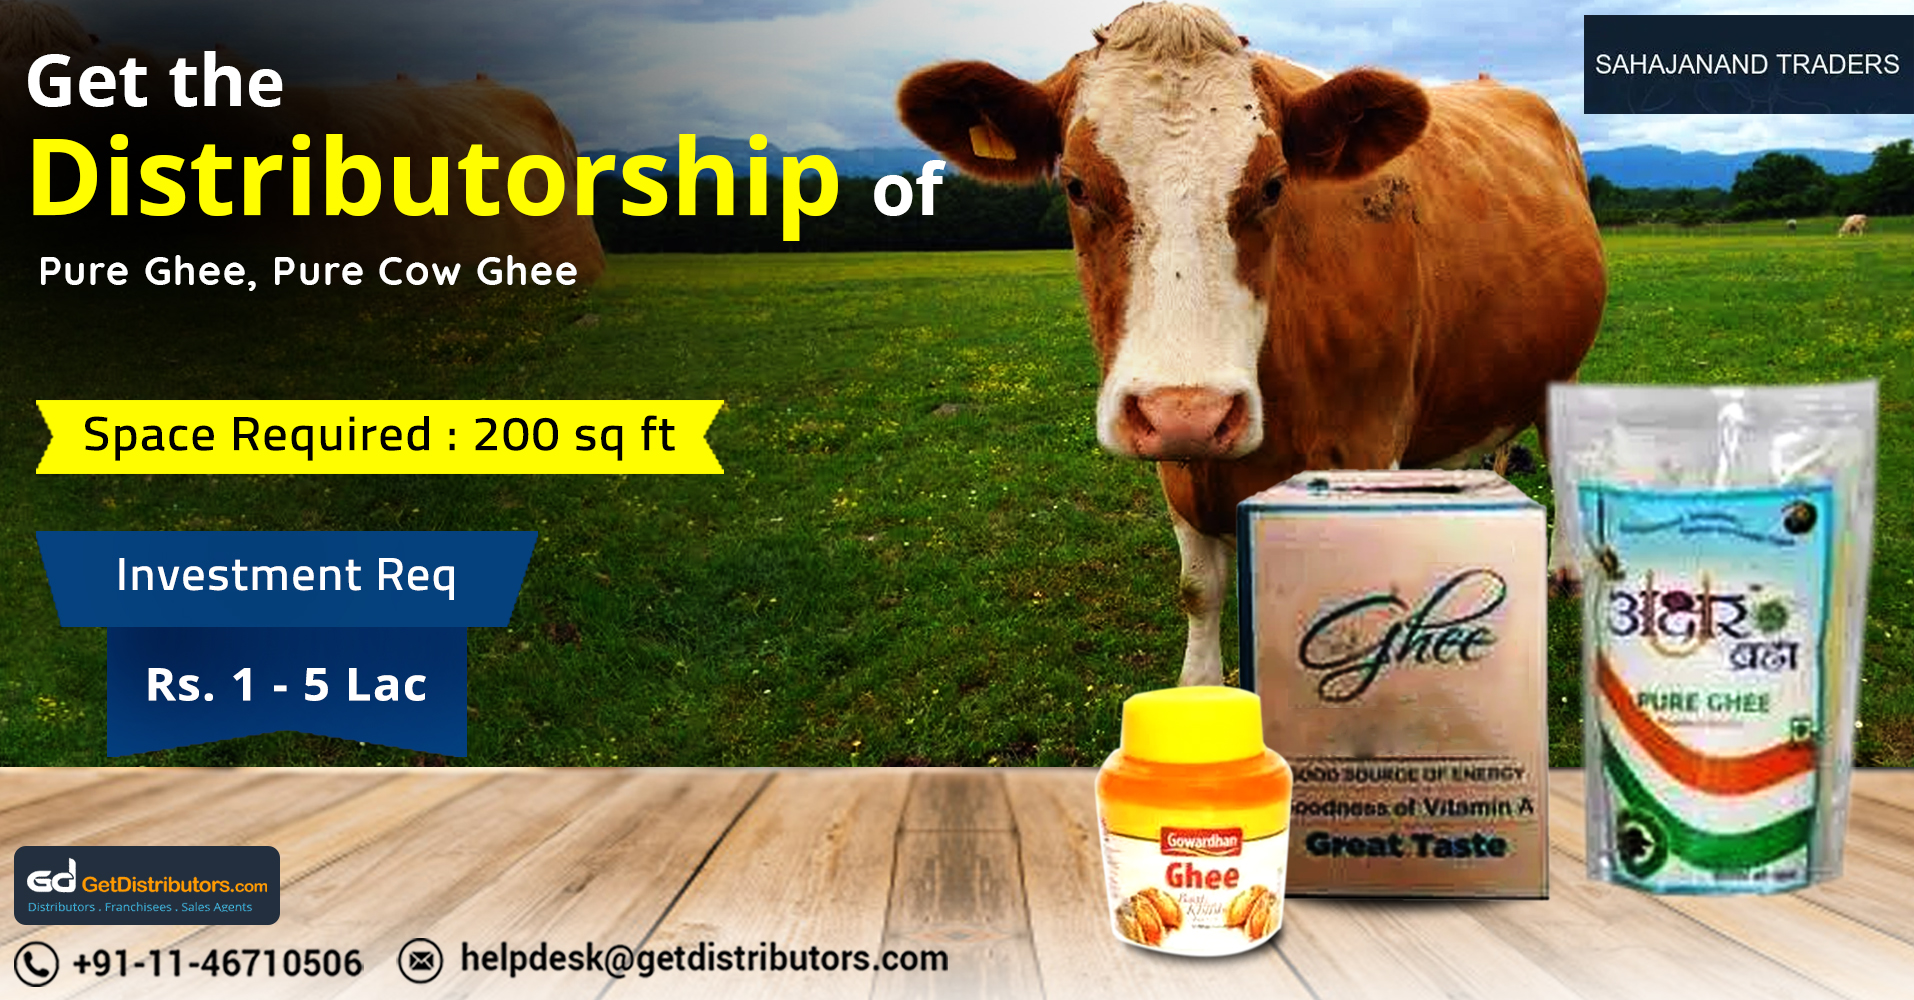 Offering High Quality Ghee At A Reasonable Price